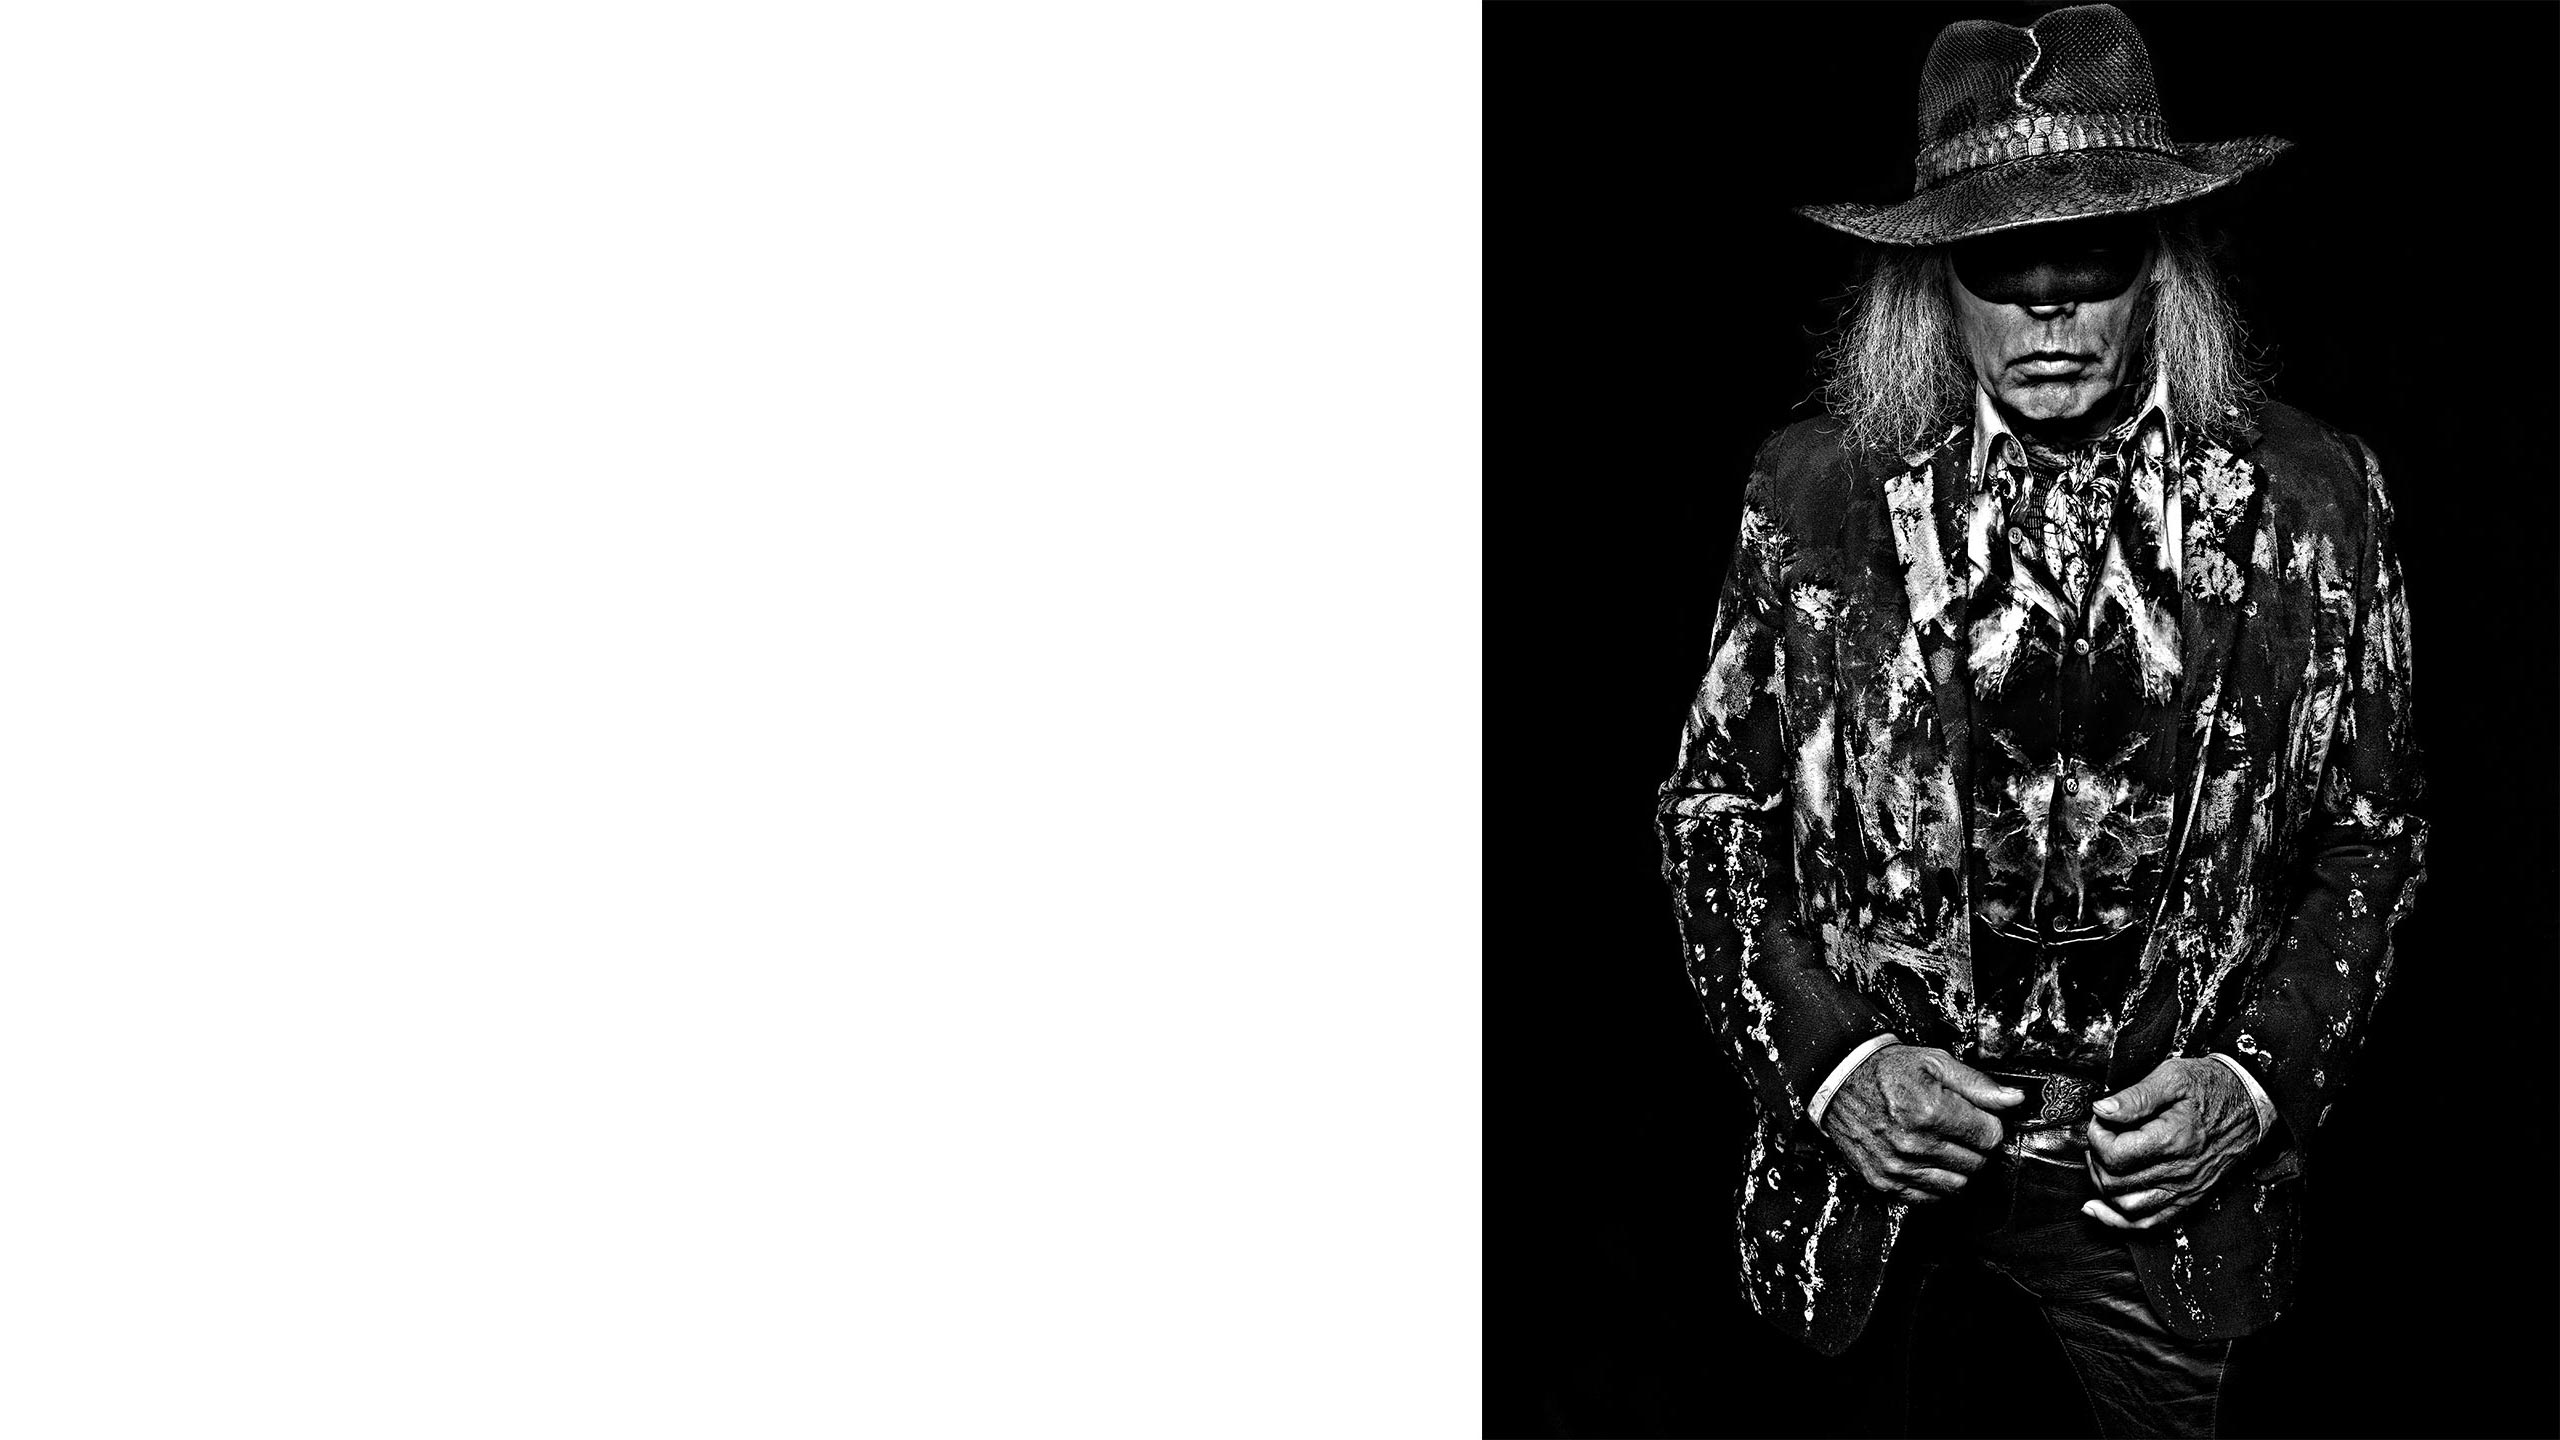 JAMES_GOLDSTEIN_BY_PATRIZIO_DI_RENZO_3